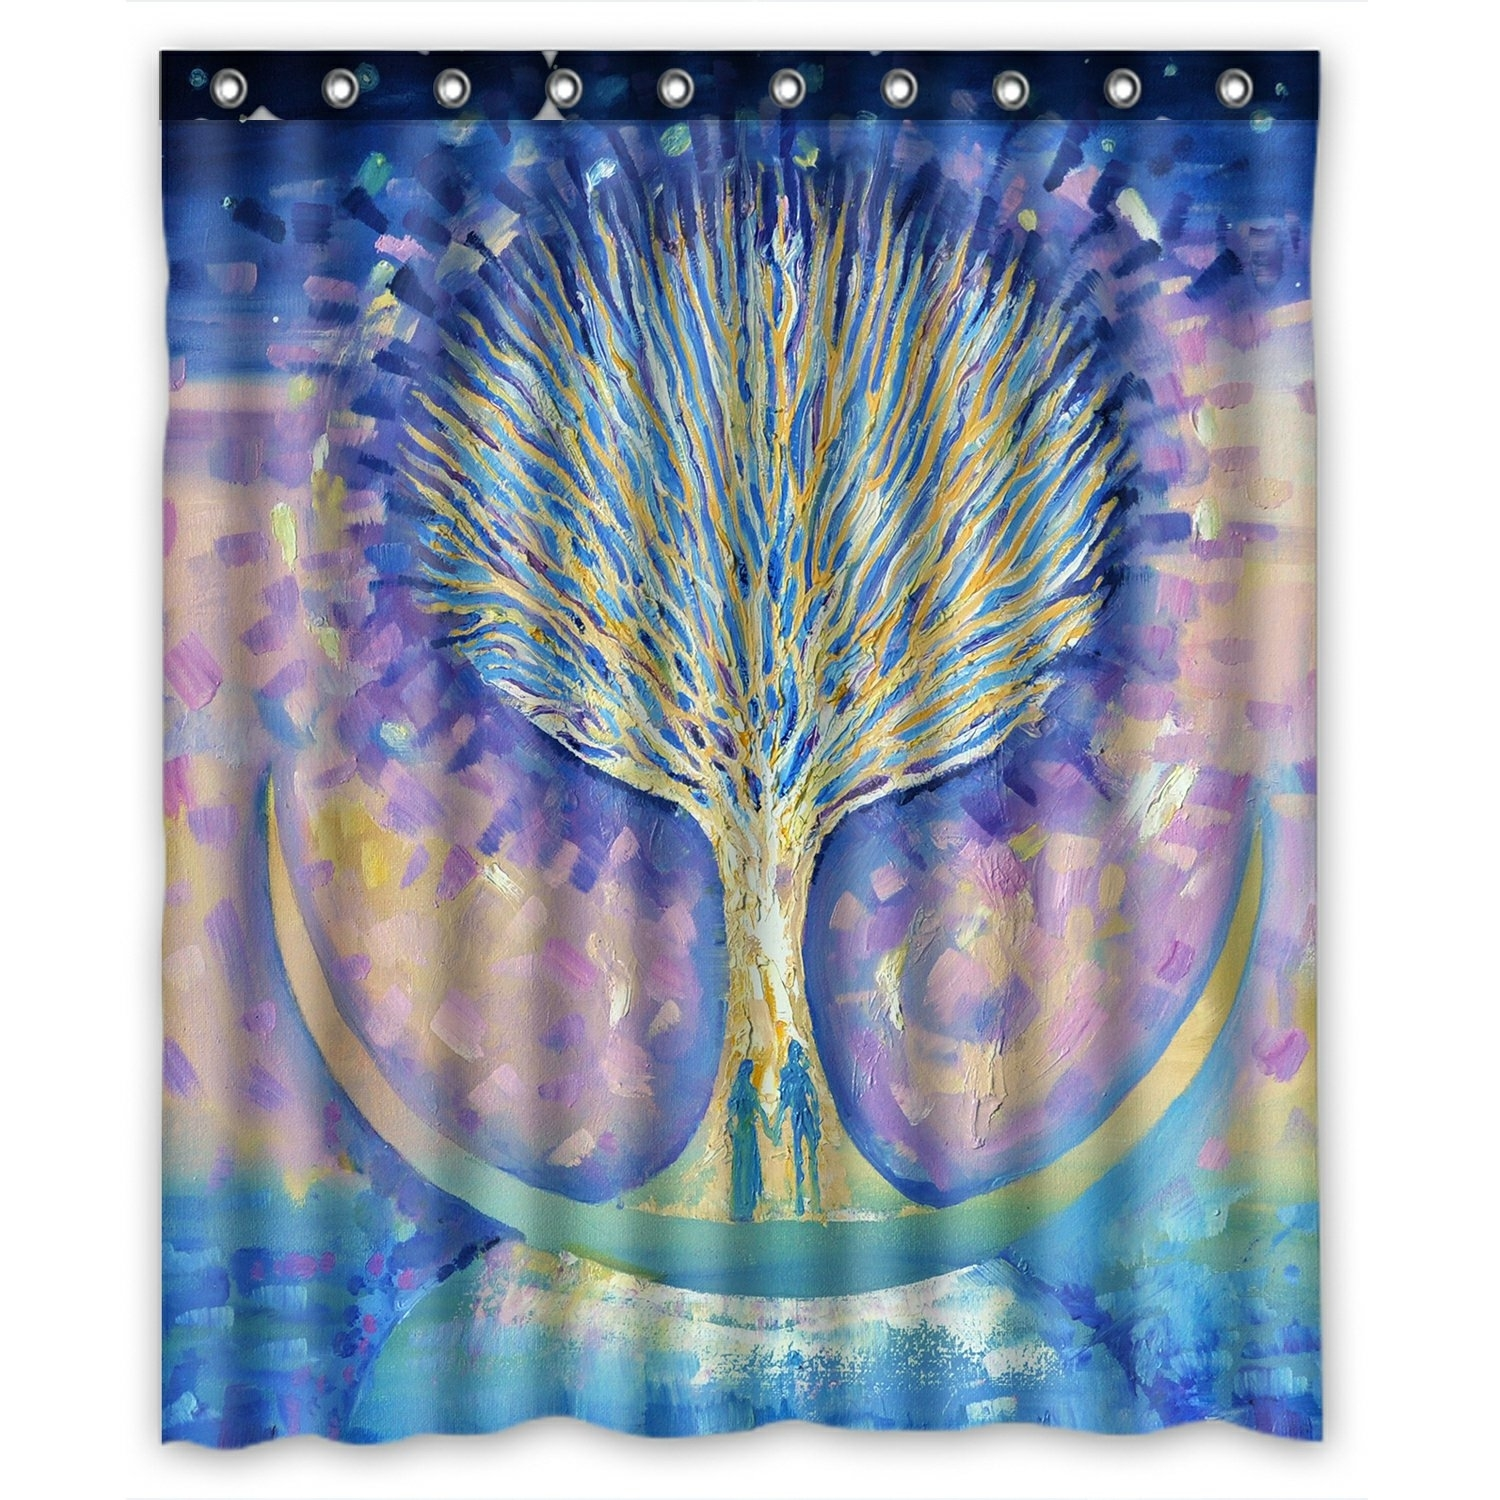 Abstract Shower Curtain, Love Couple on the Moon looking the Tree of Life Shower Curtain 60x72 inch